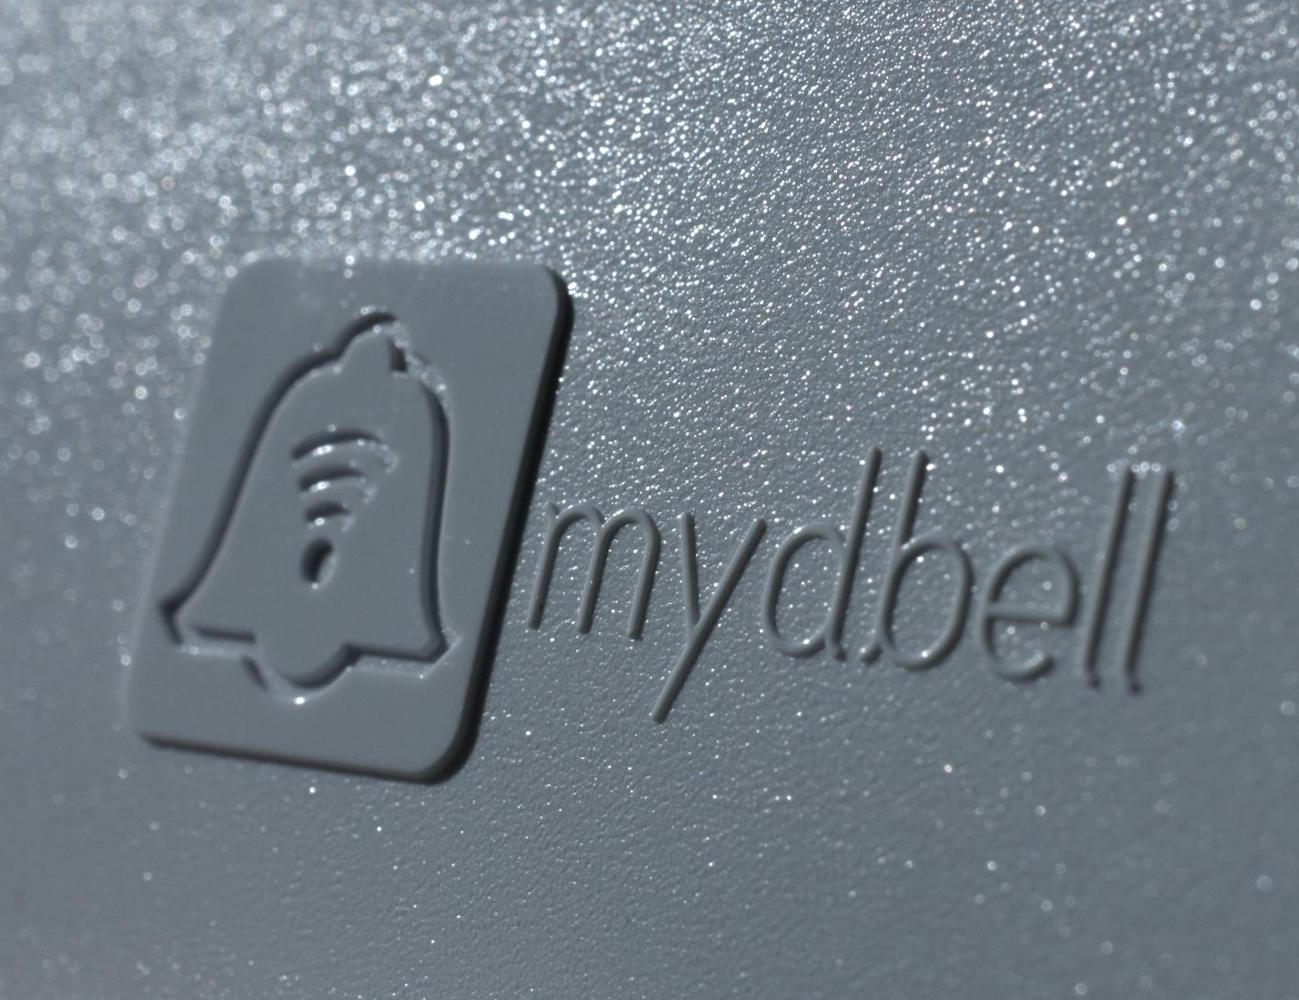 mydbell – Smarten Up Your Doorbell